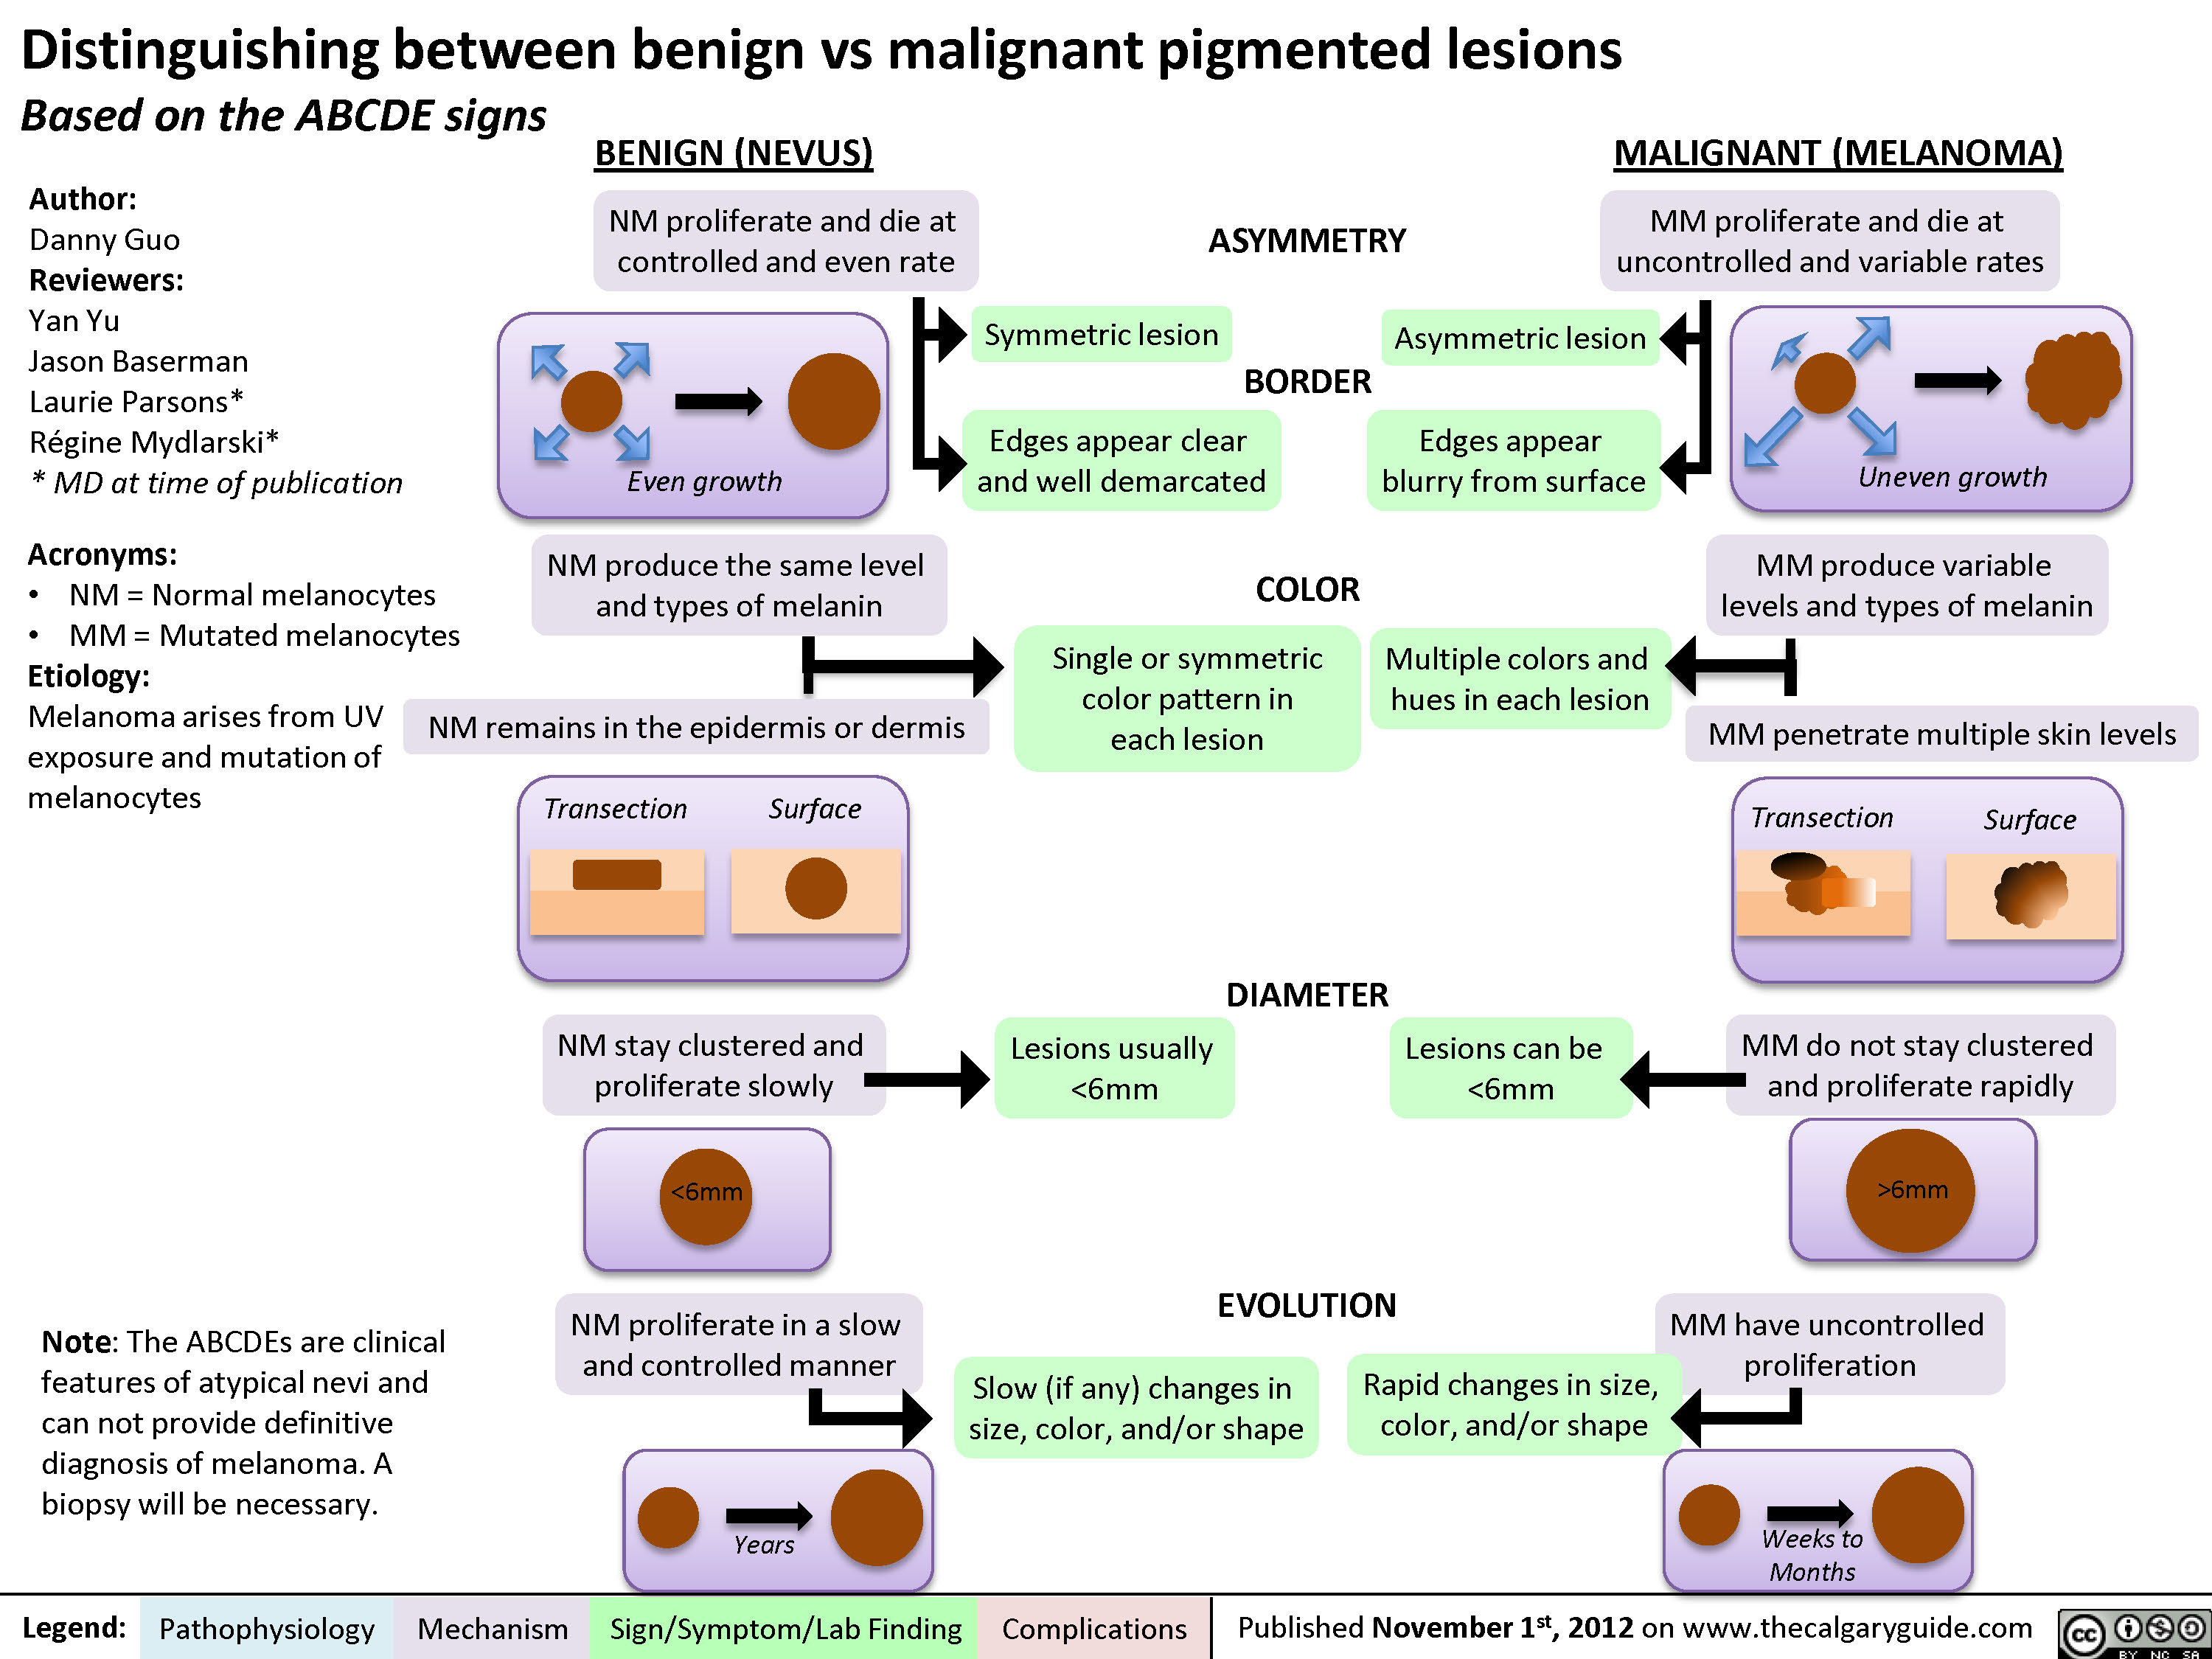 Distinguishing between Benign and Malignant Pigmented Lesions